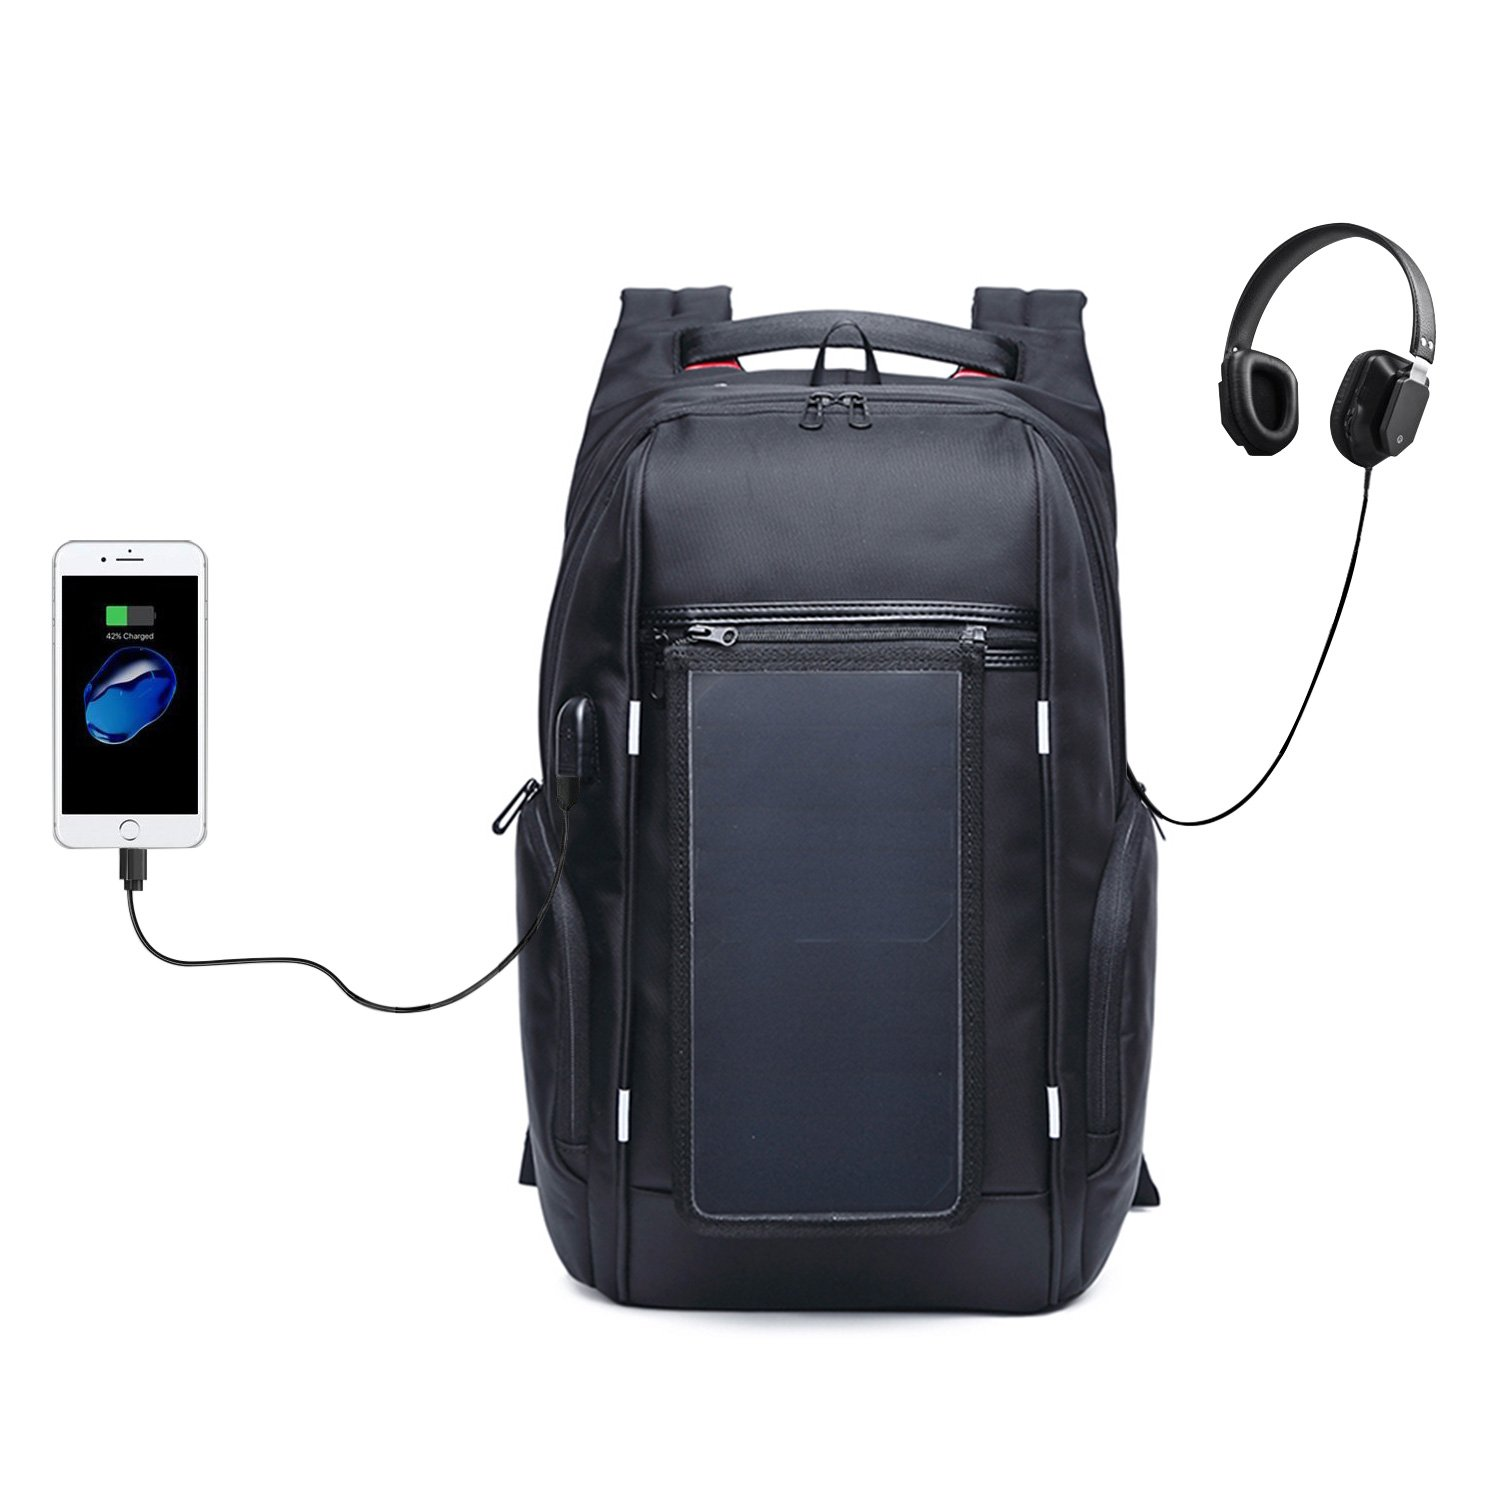 Laptop Backpack, Itechzhu Multi-function Solar Powered Bag with Dual USB Charging Port for Smart Cell Phones and Tablets, Anti Theft Large Capacity Pack for Business Travelling Hiking 15.6'' Black